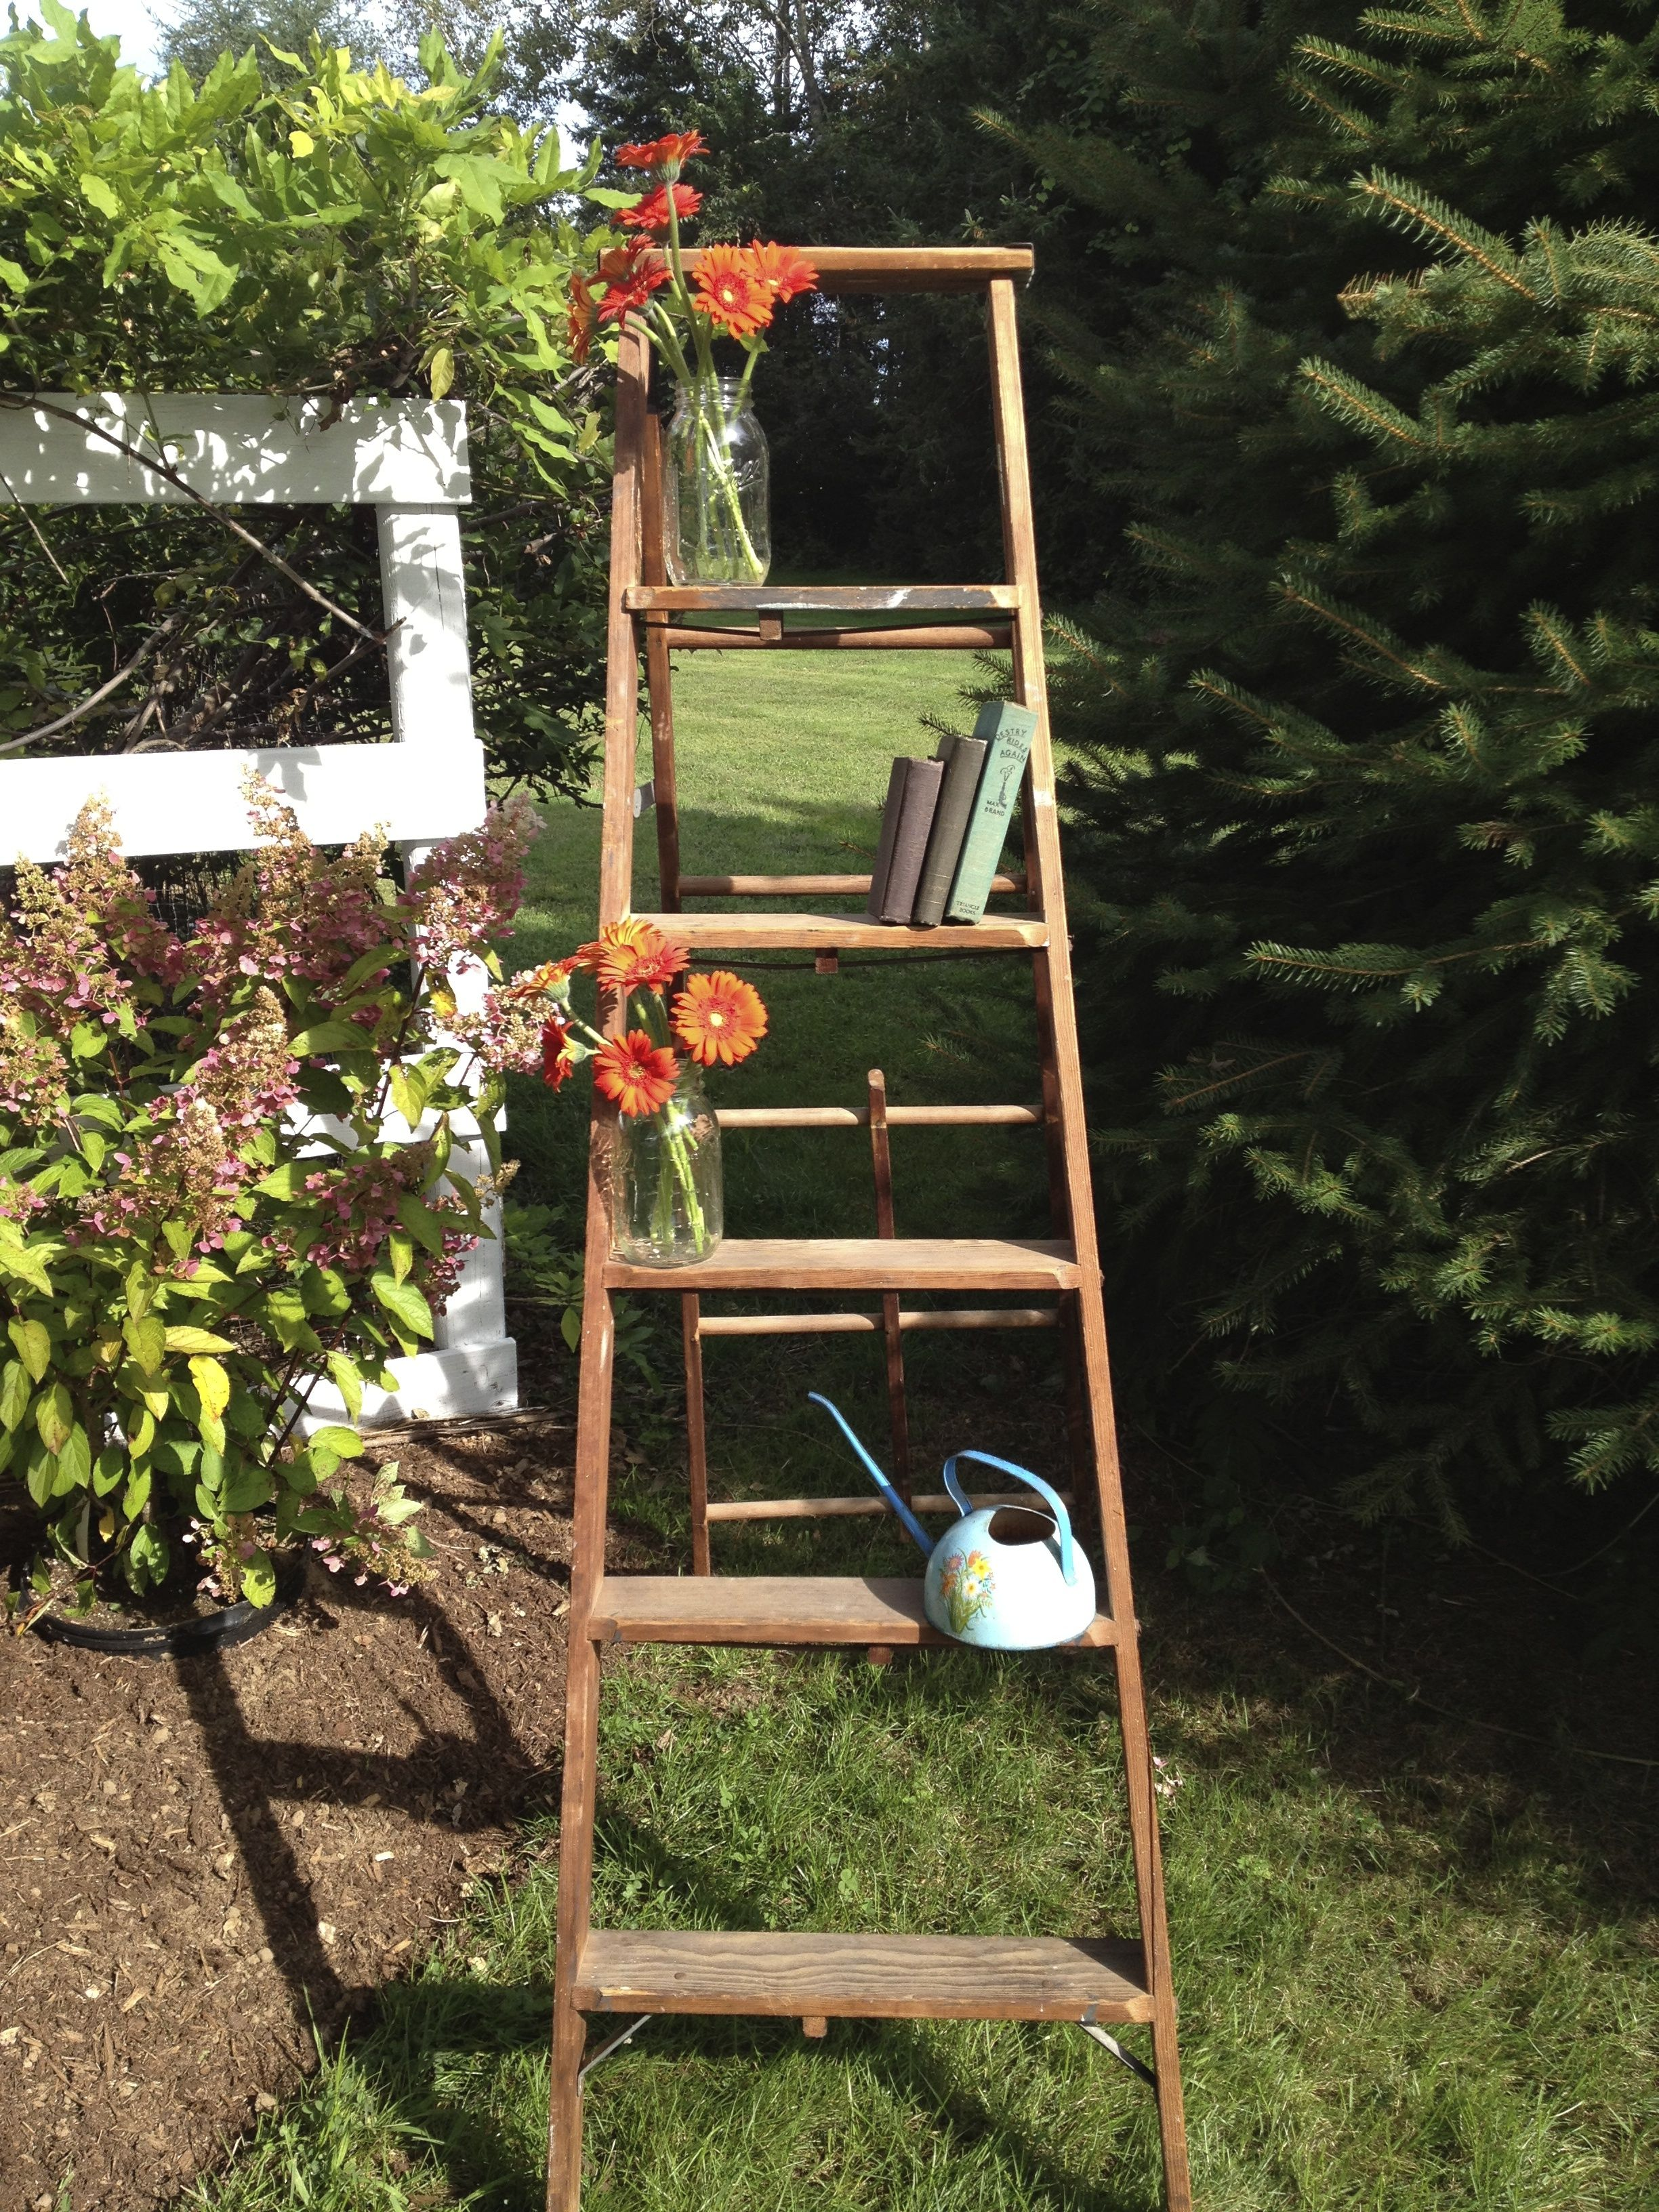 A ladder used as decor for any outside event #deocr #DIY #floral #outdoors #unique #simple #elegant